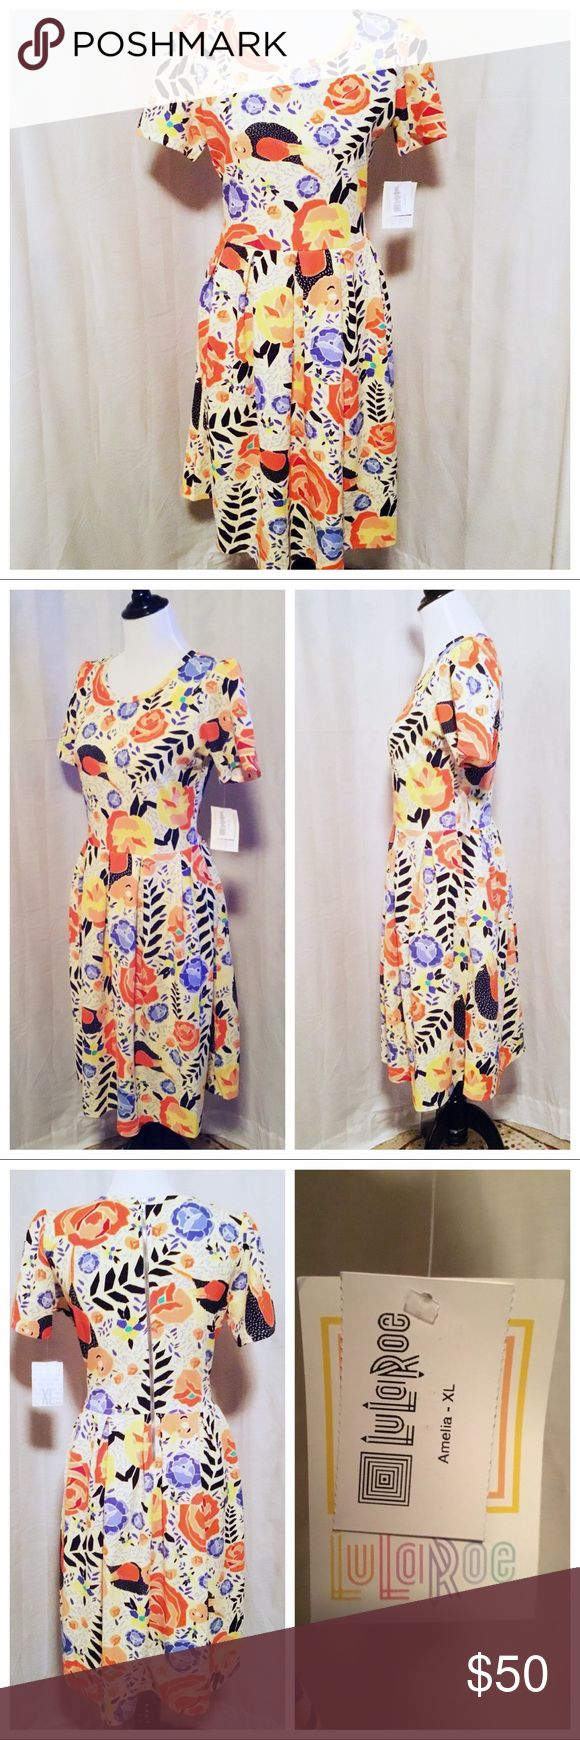 NWT ~ LuLaRoe Amelia Dress - Size XL (14-16) NWT! Yellow Multi- Color Tropical Bird Print Amelia Dress from LuLaRoe * Fit & Flare, Reach -In Side Pockets on Skirt * Zipper up Back * Midi Length * Size XL (14-16) LuLaRoe Dresses Midi